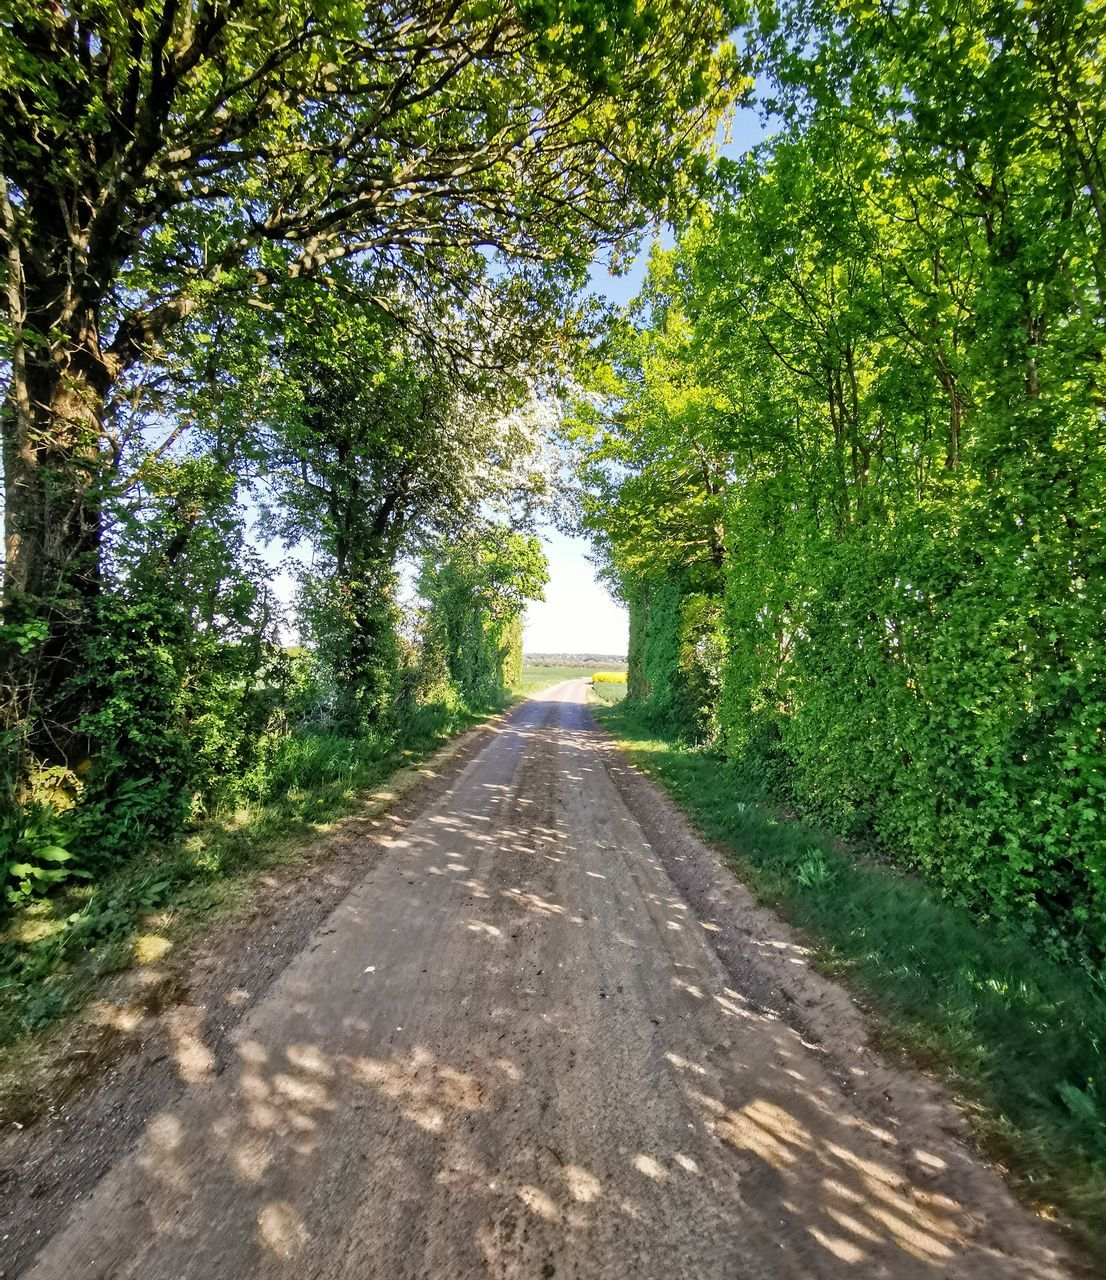 ROAD ALONG TREES AND PLANTS